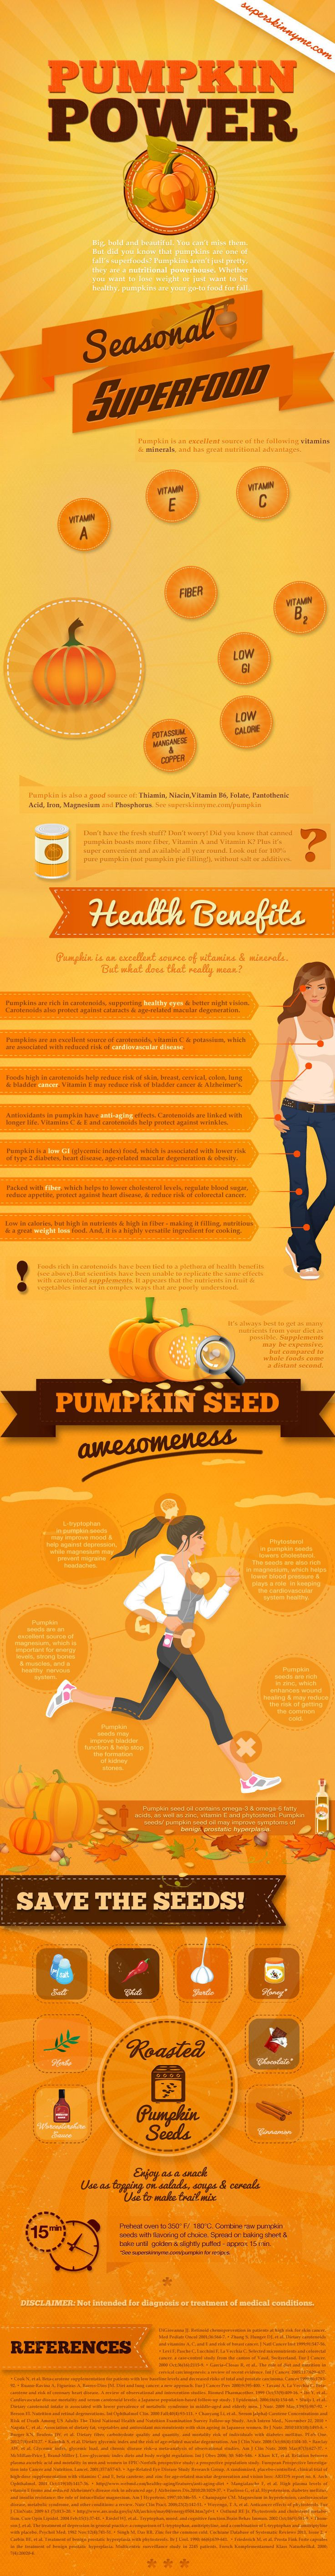 The Health Benefits of Pumpkin Seeds (and if you've never tried them, they're delicious either for snacking or for adding to salads, veggies, and all sorts of other foods)